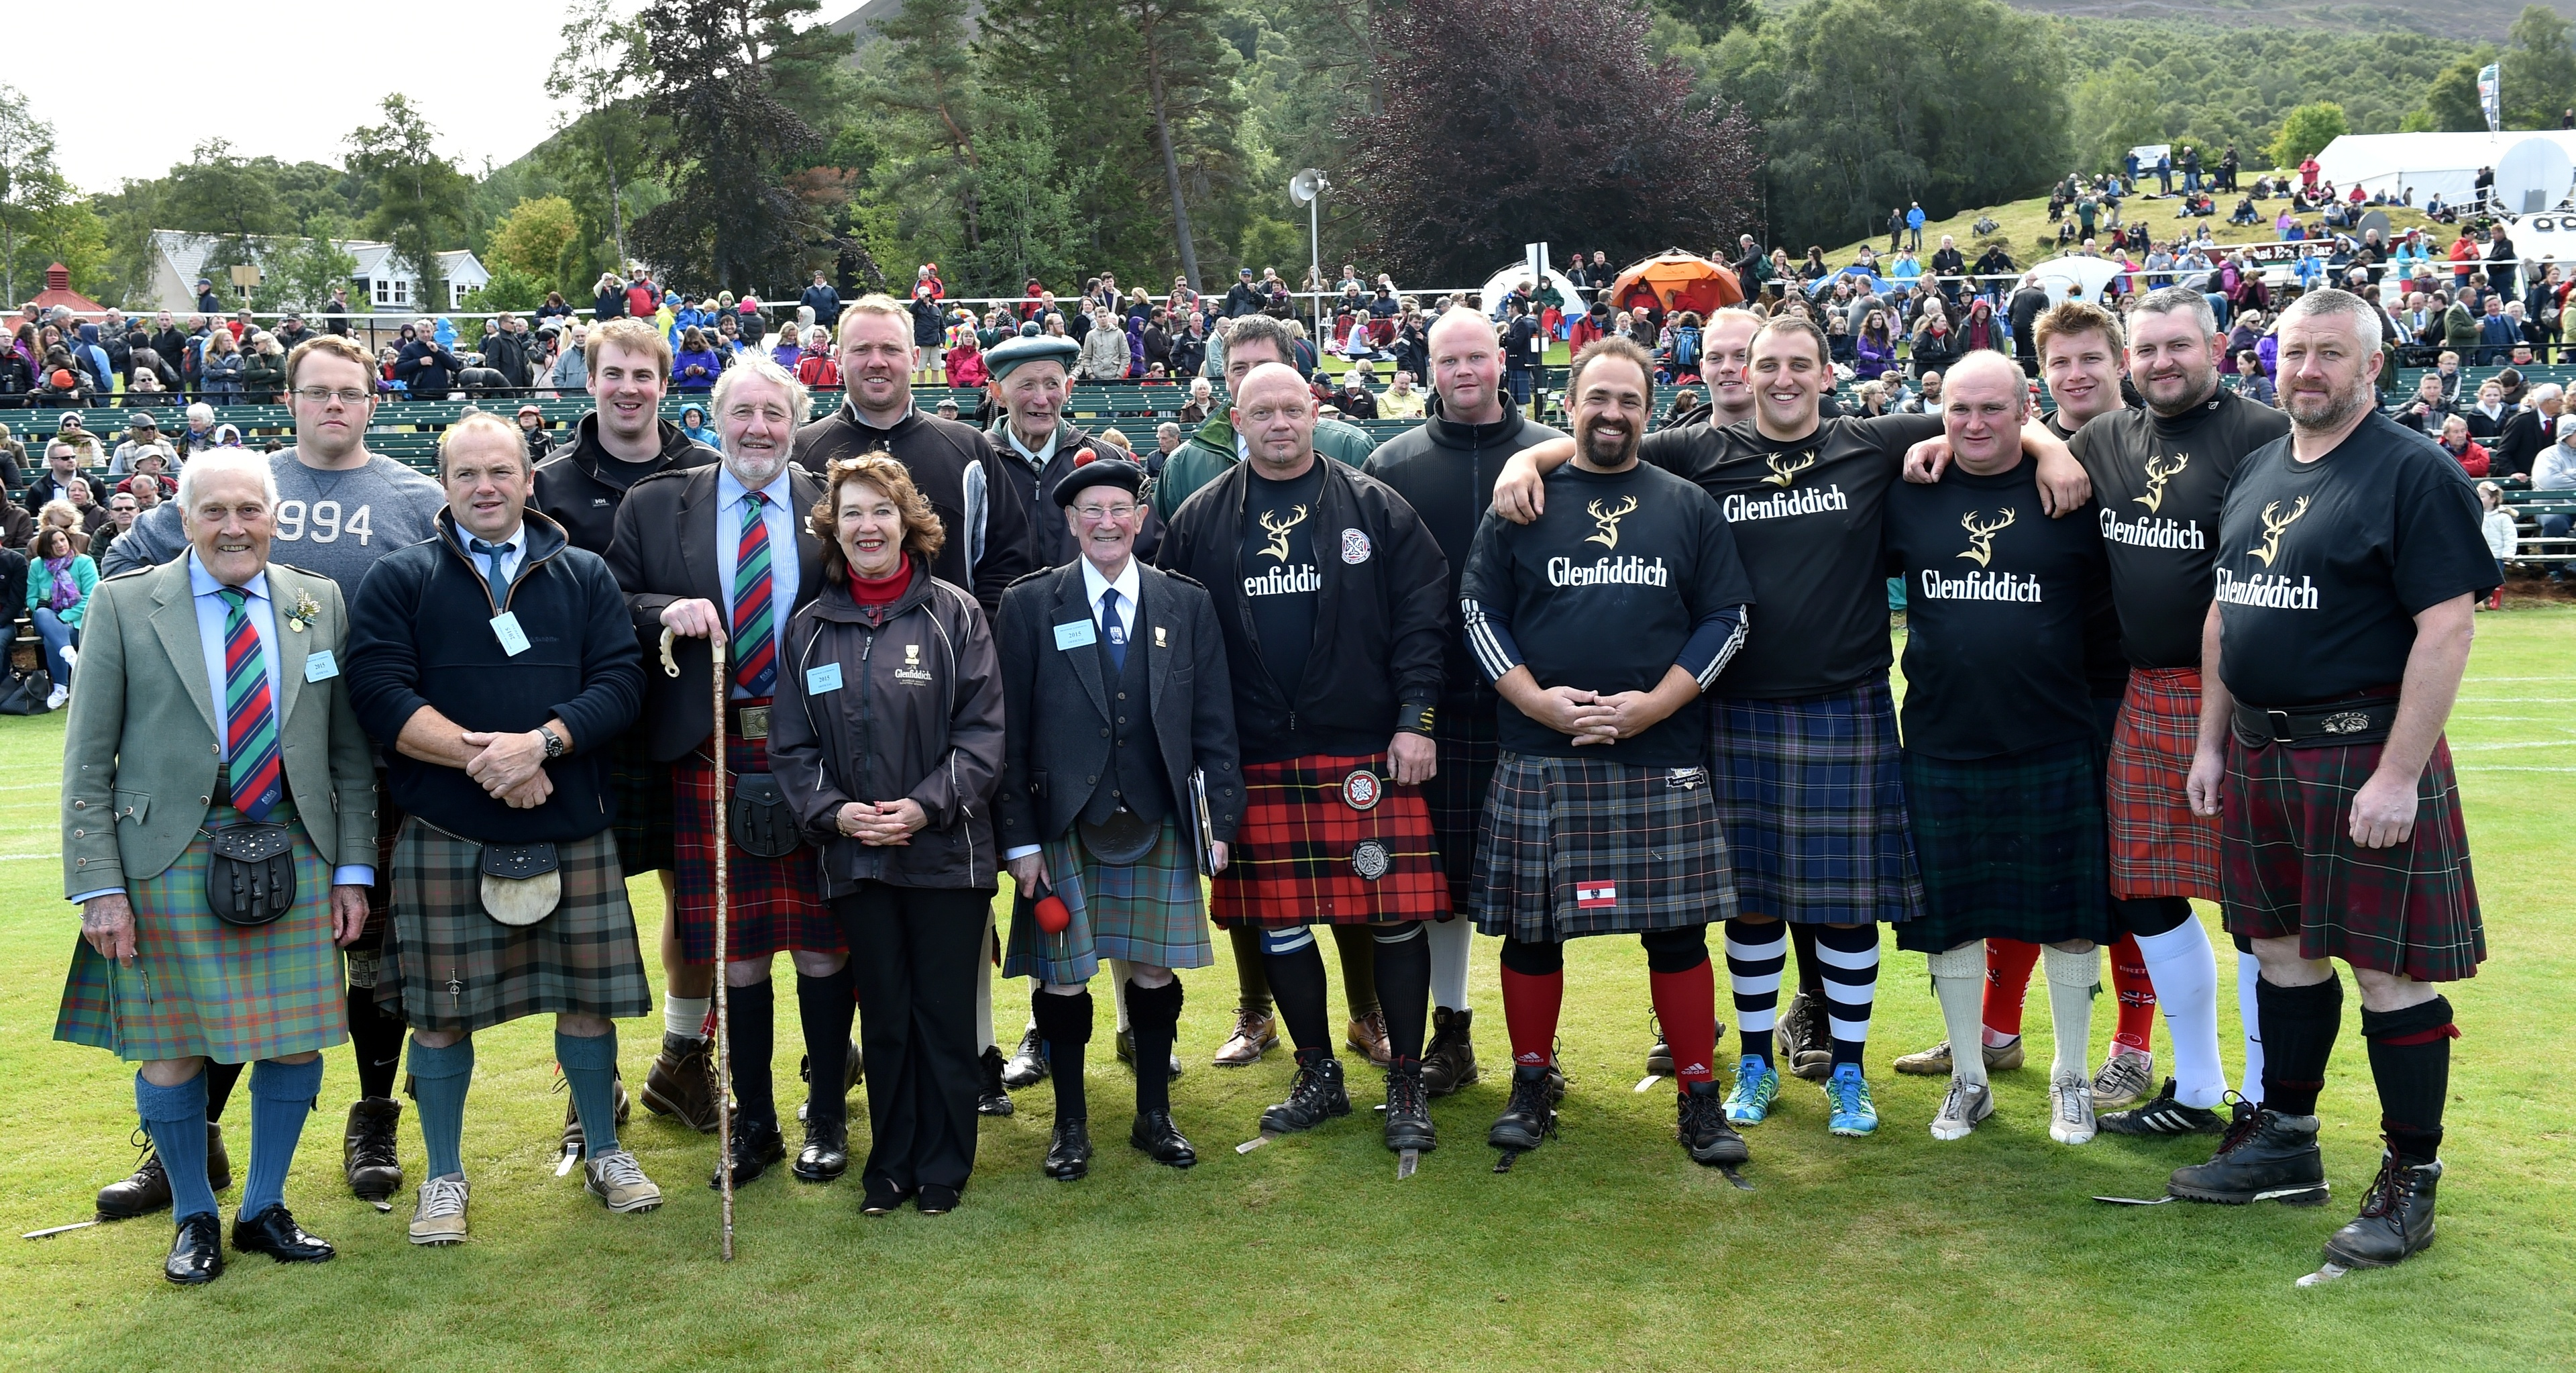 Robbie Shepherd, pictured centre holding the microphone, has stepped down as a caller for the Braemar Gathering.